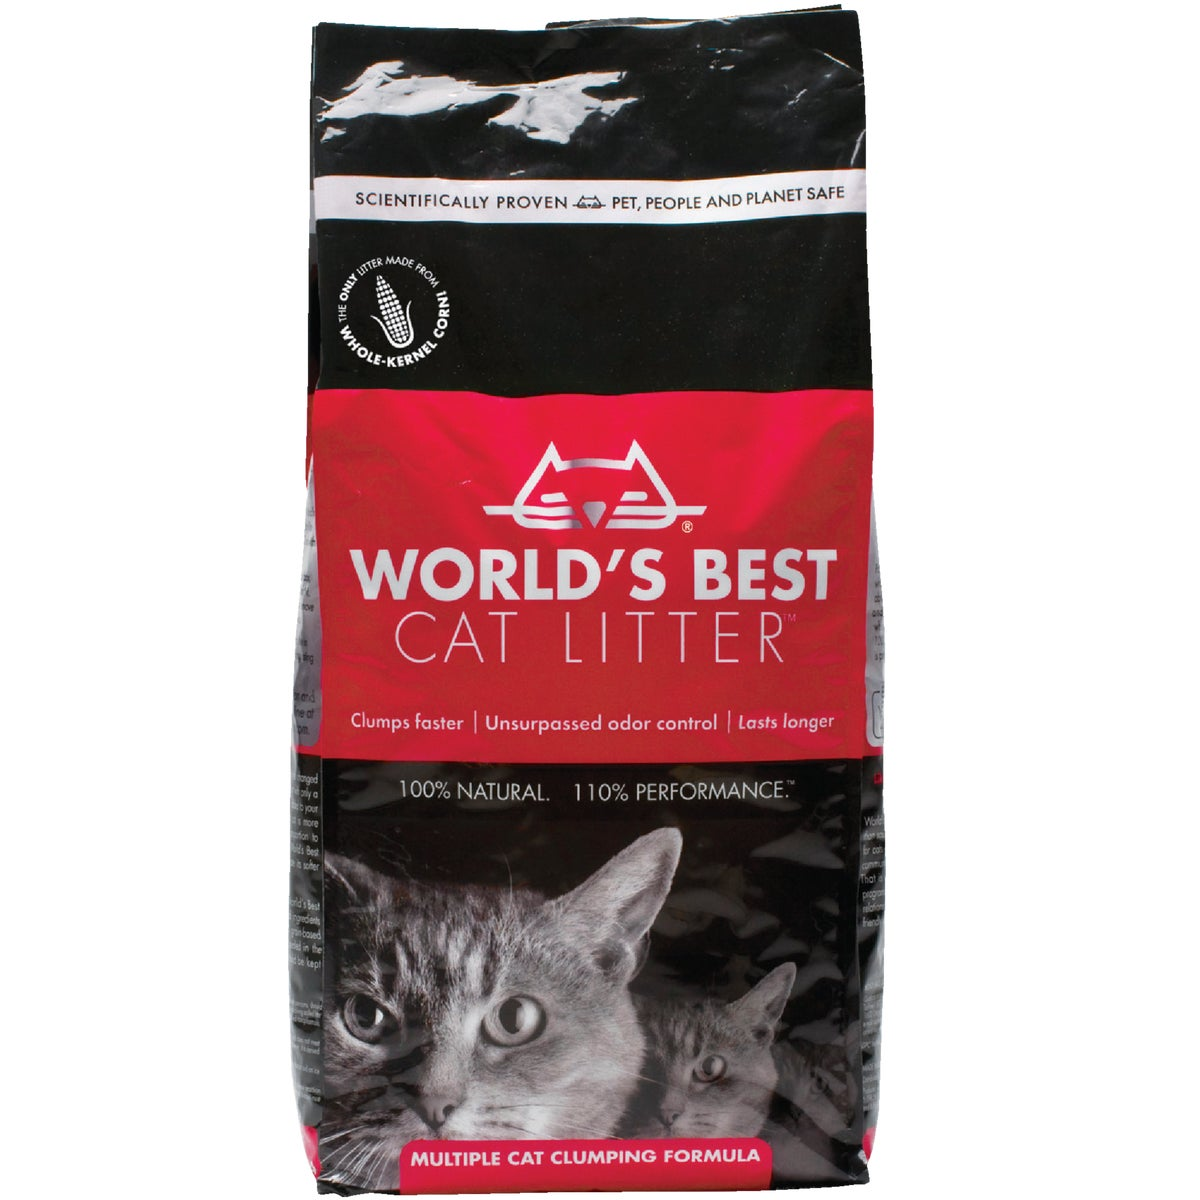 7LB WRLD BEST CAT LITTER - 8051 by Kent Feeds Inc